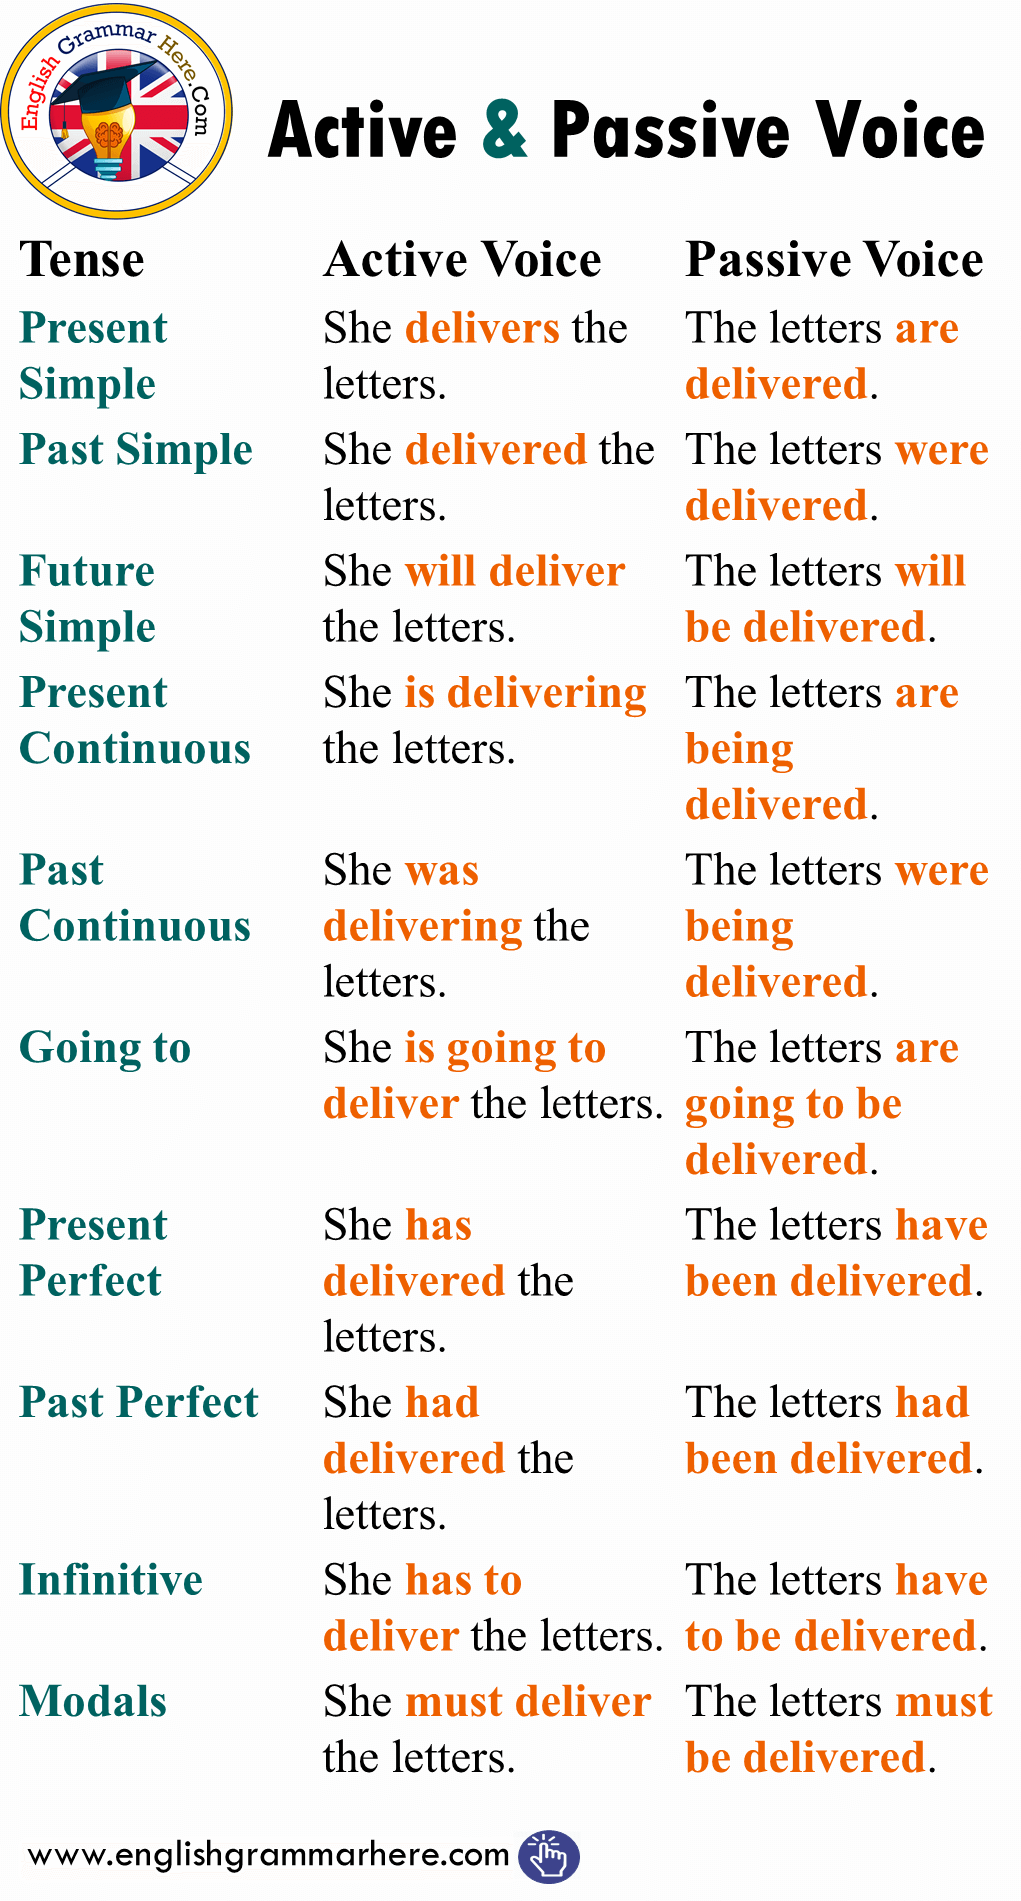 Active and Passive Voice with Tenses, Example Sentences